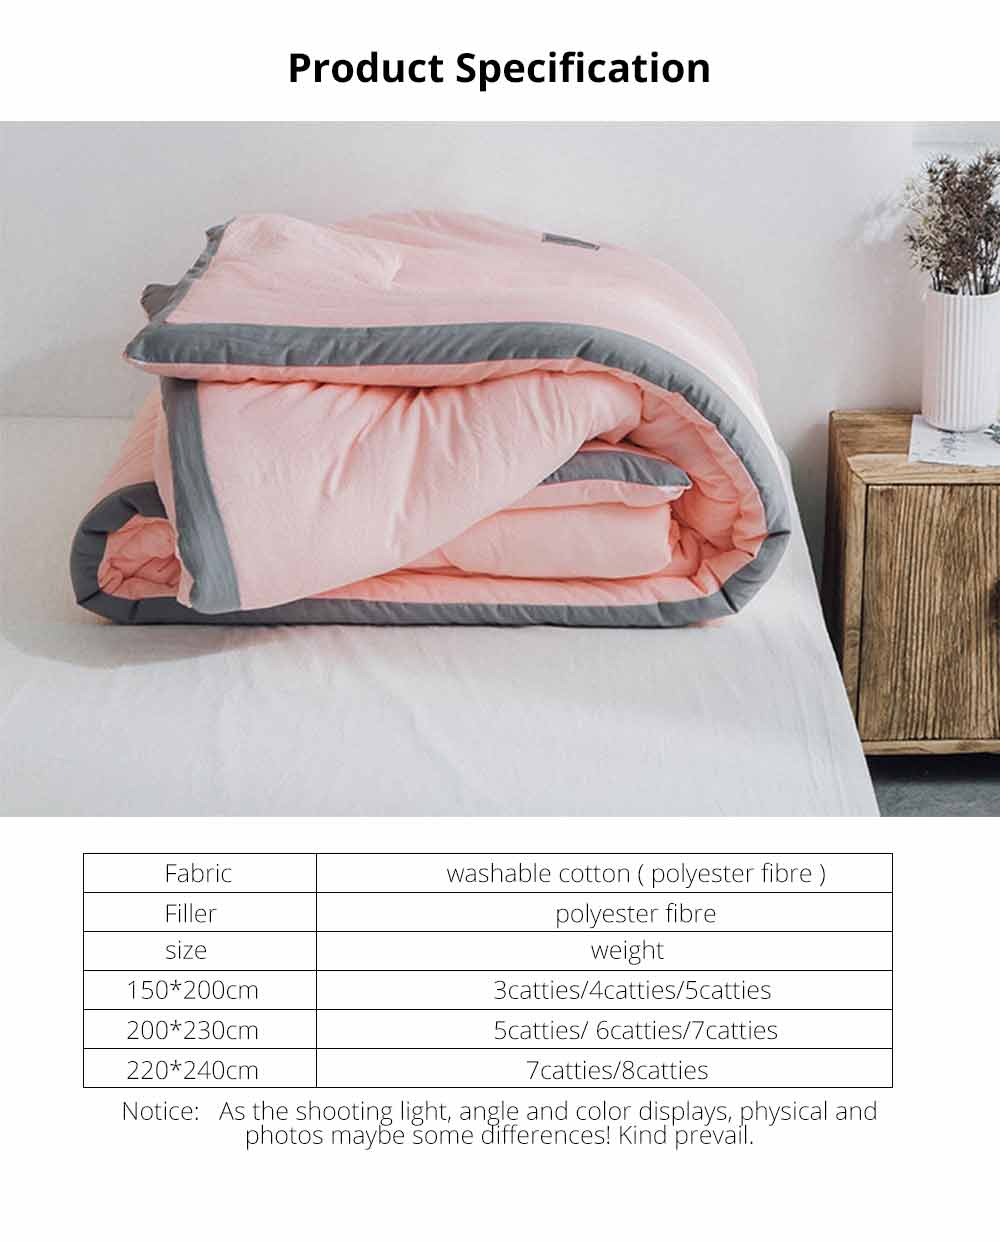 Warm Quilt For Winter, Washable Cotton Quilt Thickened, Single Double King Size Bed Sheet Duvet Cover 12